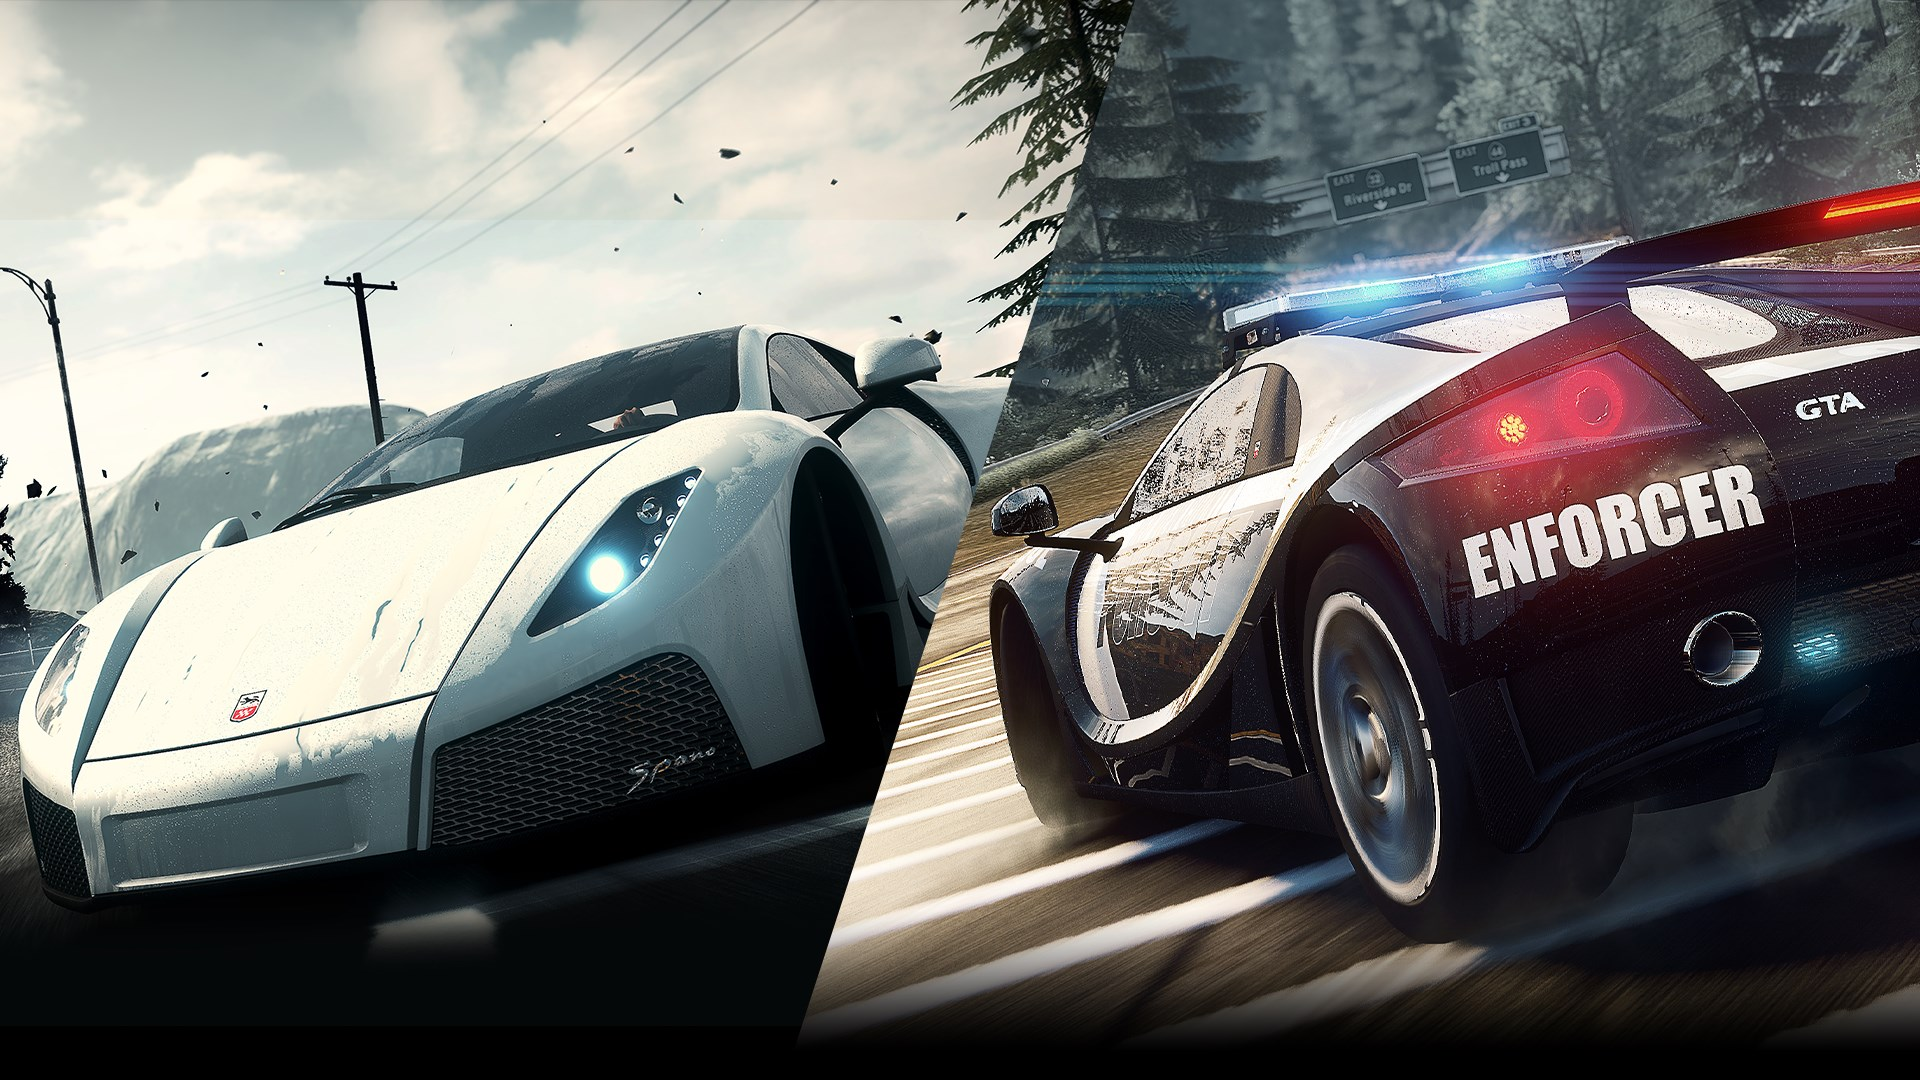 Buy Need for Speed™ Rivals Complete Movie Pack - Microsoft Store en-IN